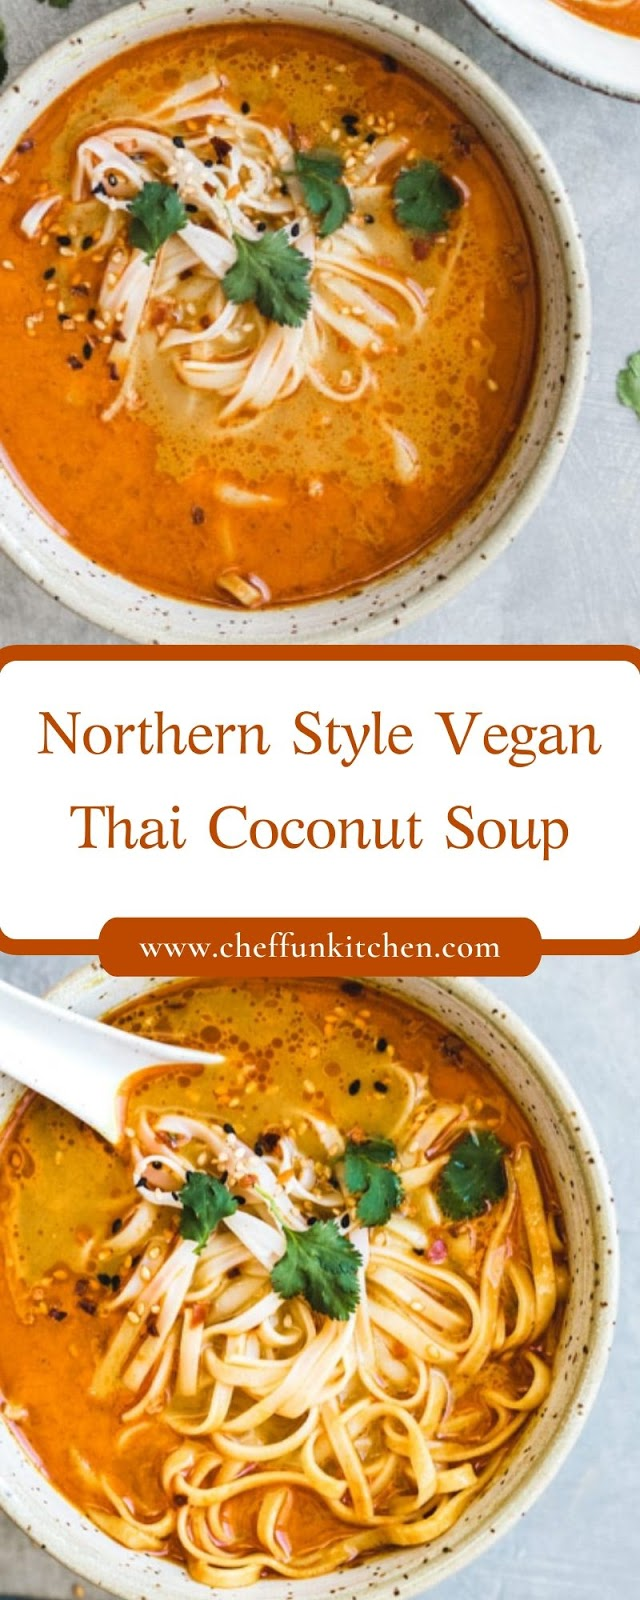 Northern Style Vegan Thai Coconut Soup